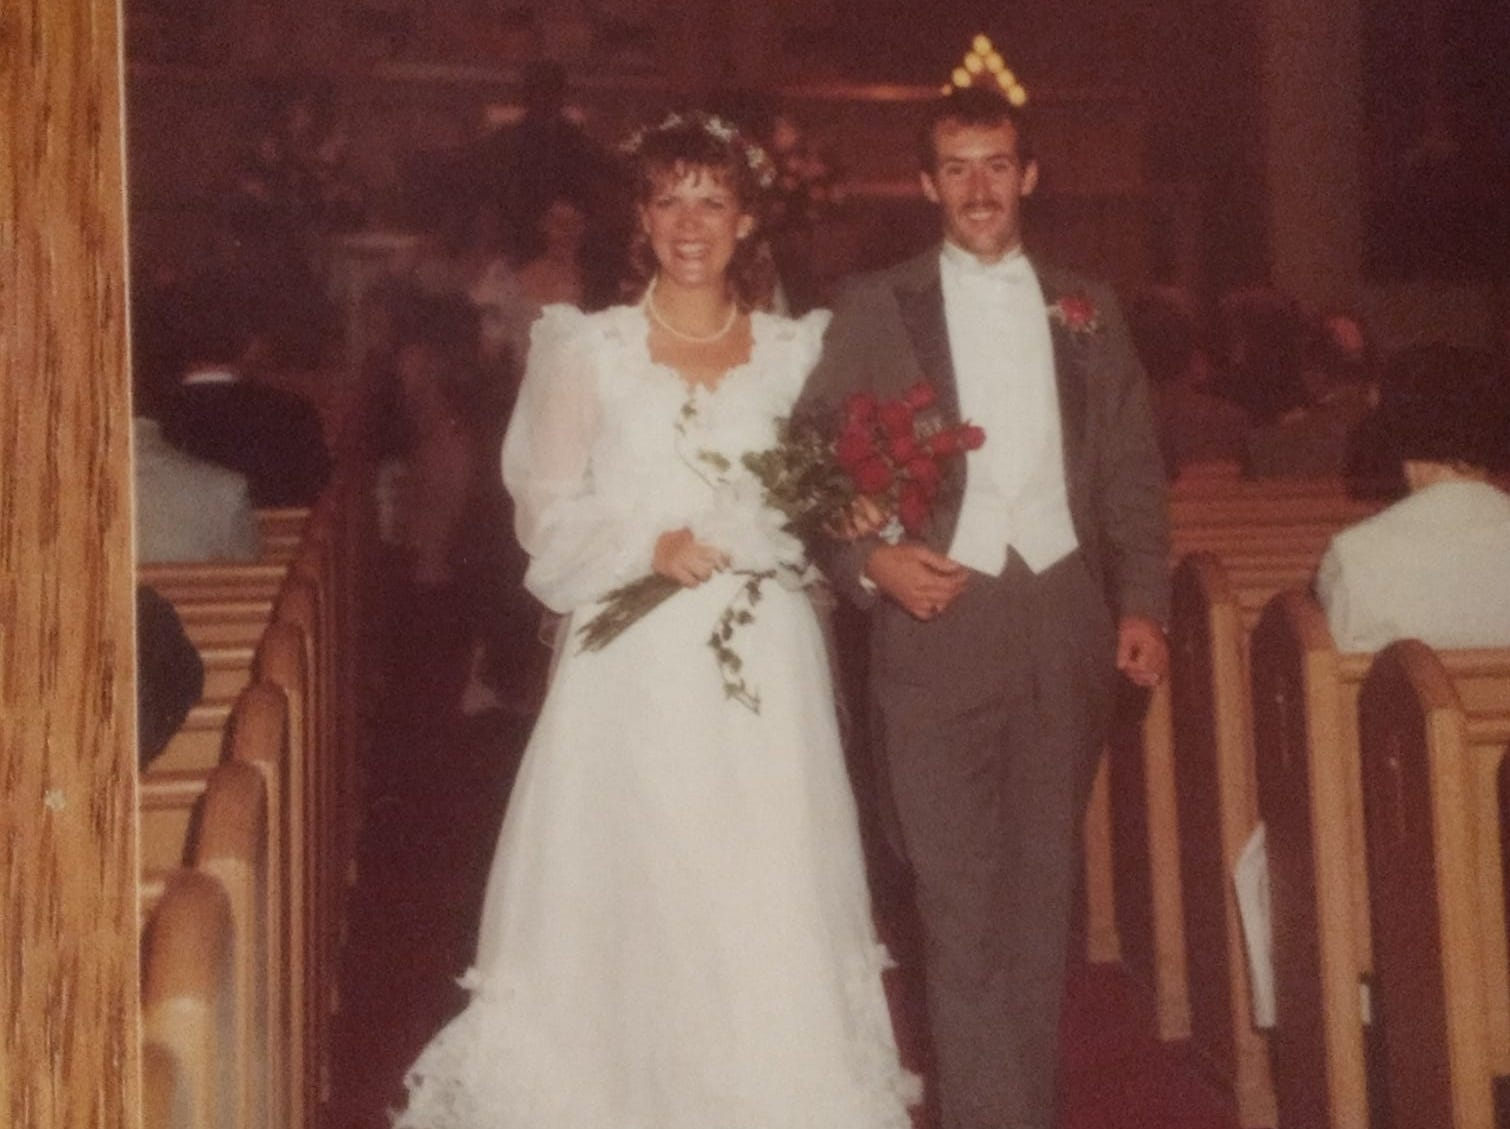 "Angie and Mark Dahm on their wedding day in 1984 at  Zion UCC in Sheboygan.  ""Mark and I met at a party, right when I moved from Minneapolis to Colorado. He grew up in Minneapolis, so we had a lot in common. My friends couldn't believe I had to move to Colorado to meet a guy from Minnesota!"" said Angie."